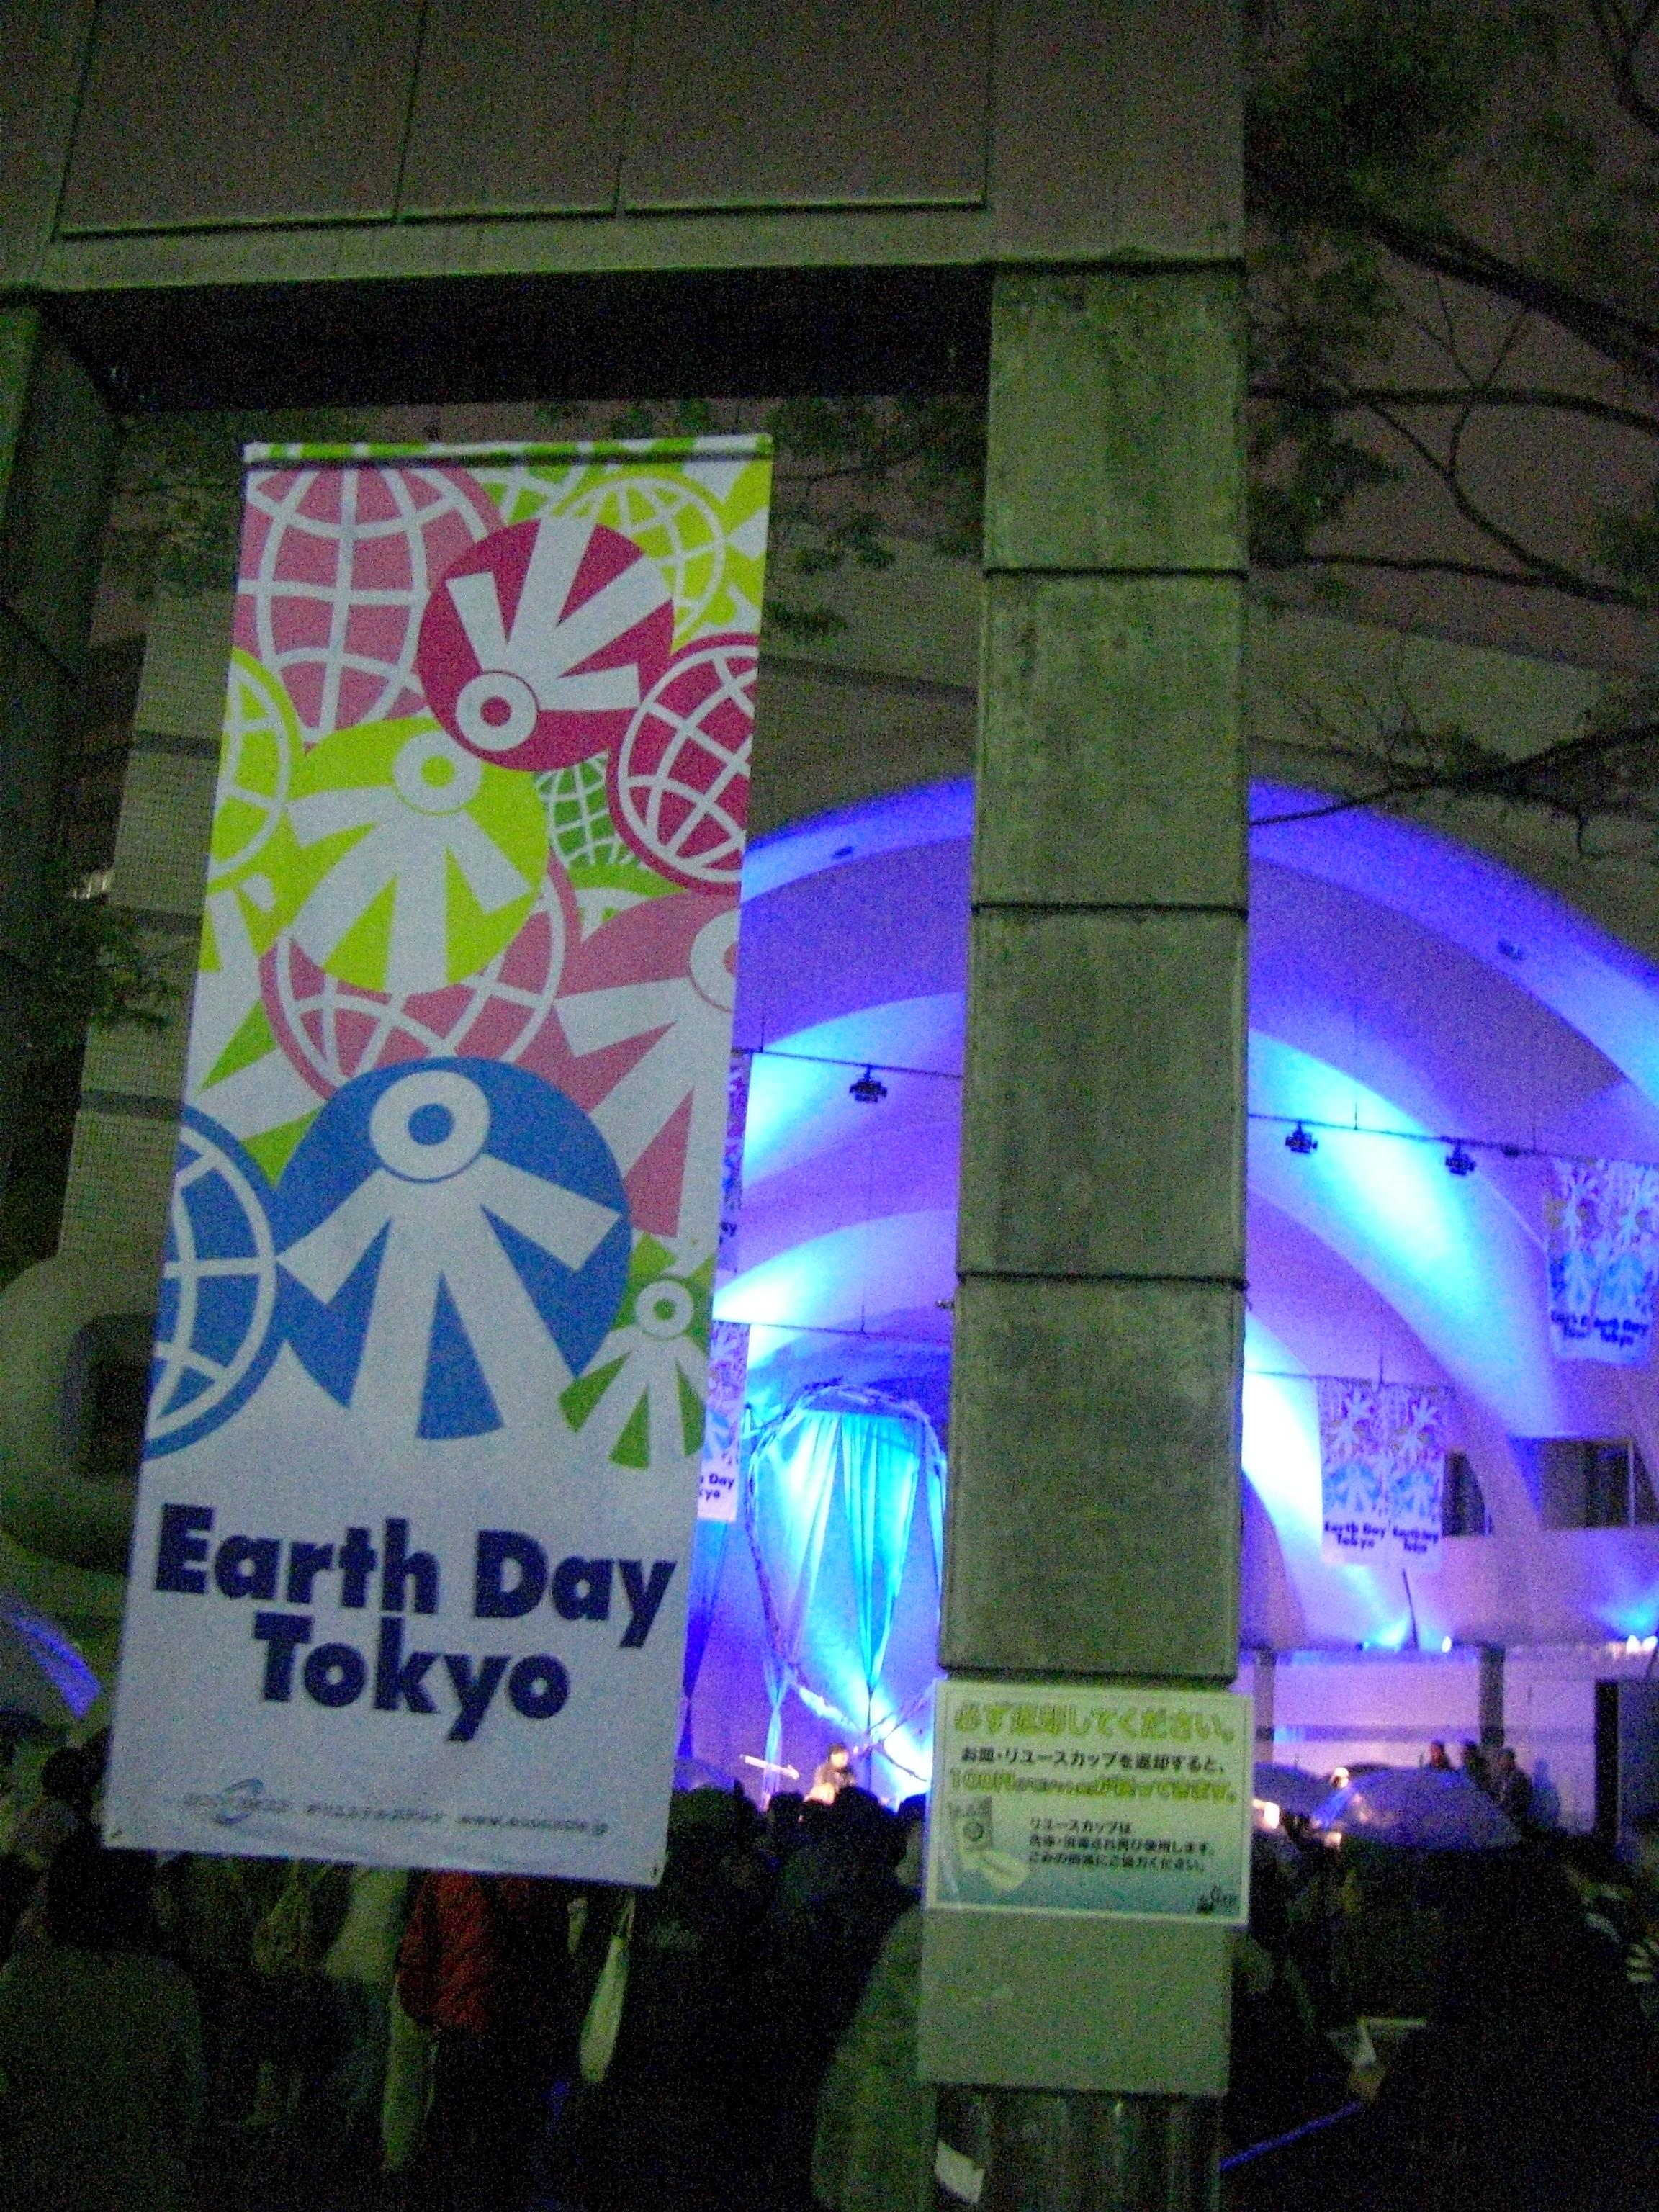 earth day tokyo 2008